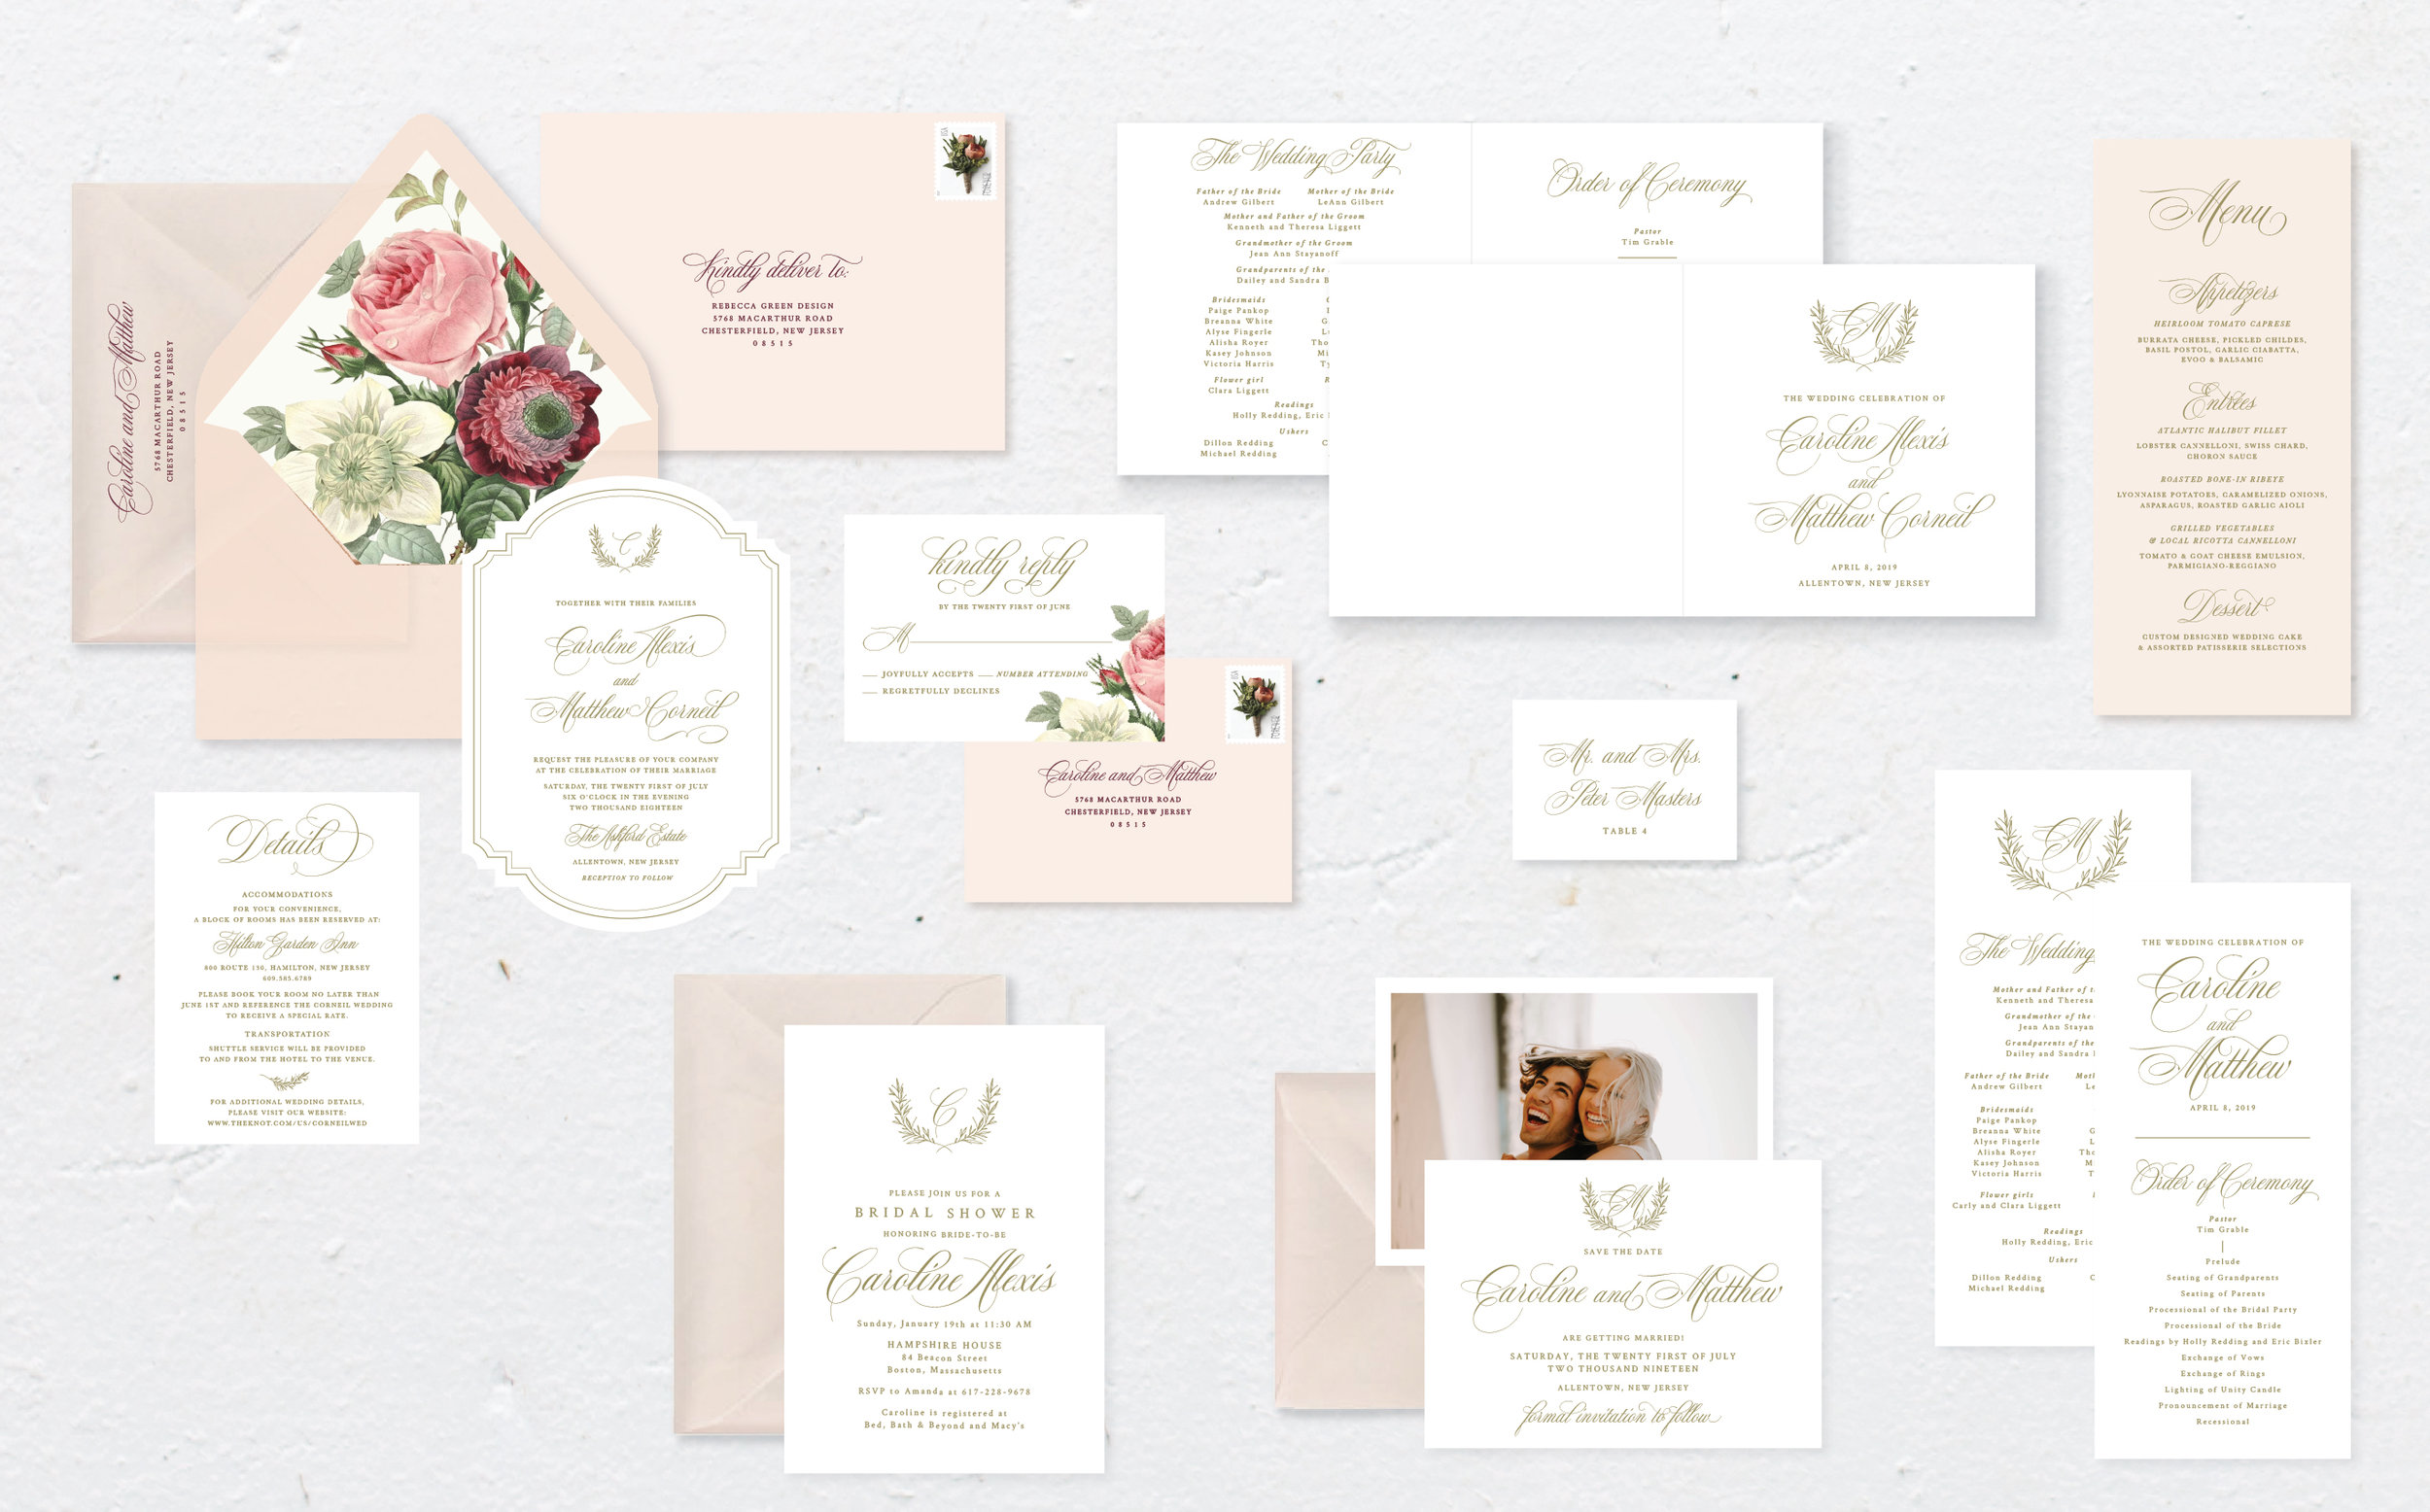 Bluch and Gold Vintage Wedding Invitation Suite